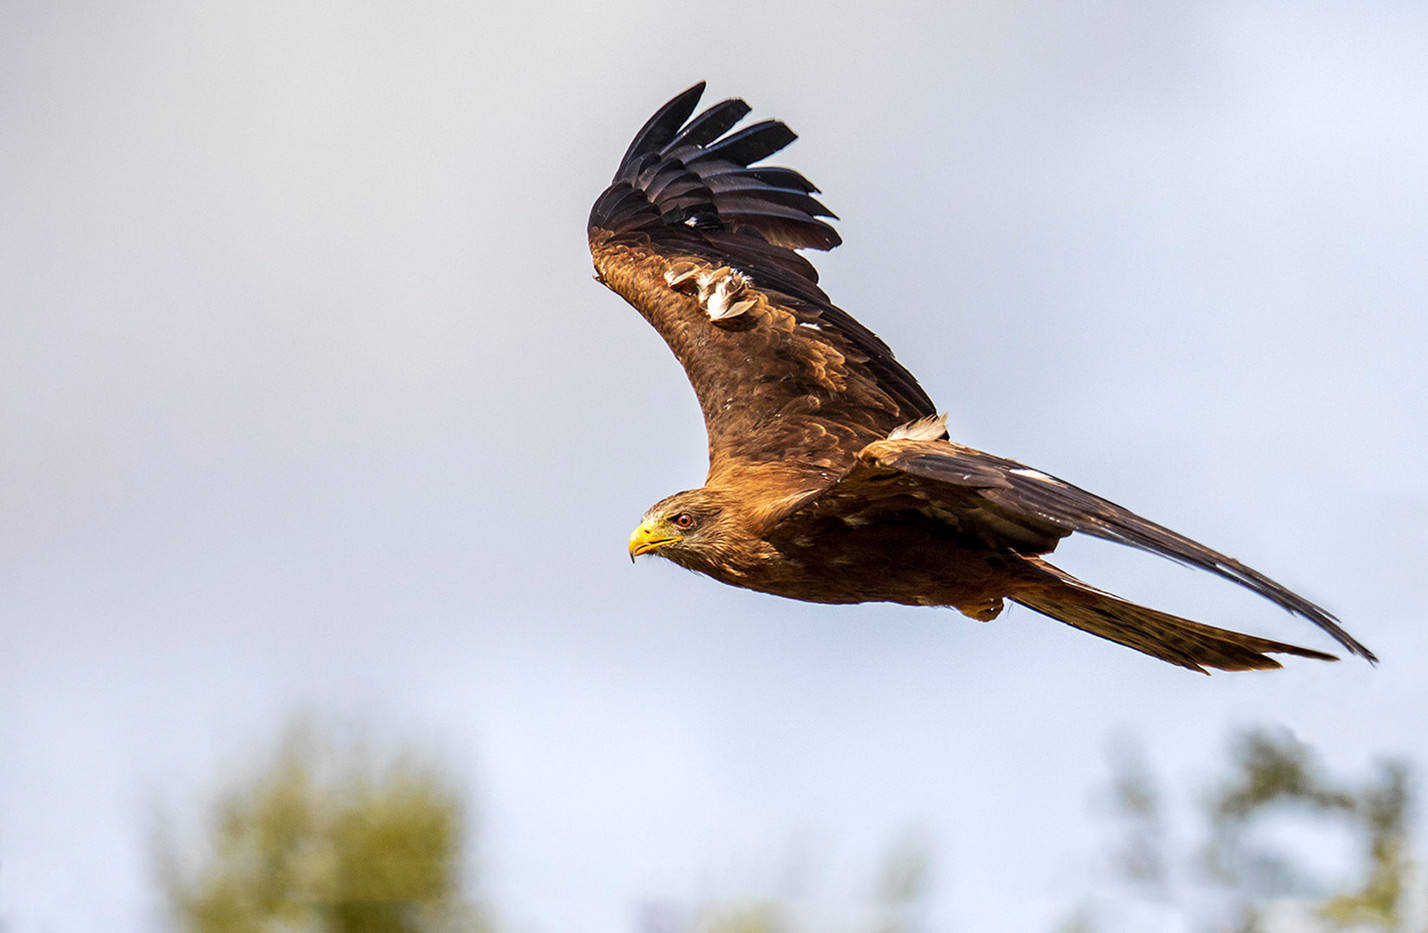 16 BLACK KITE ON THE PROWL by Philip Easom